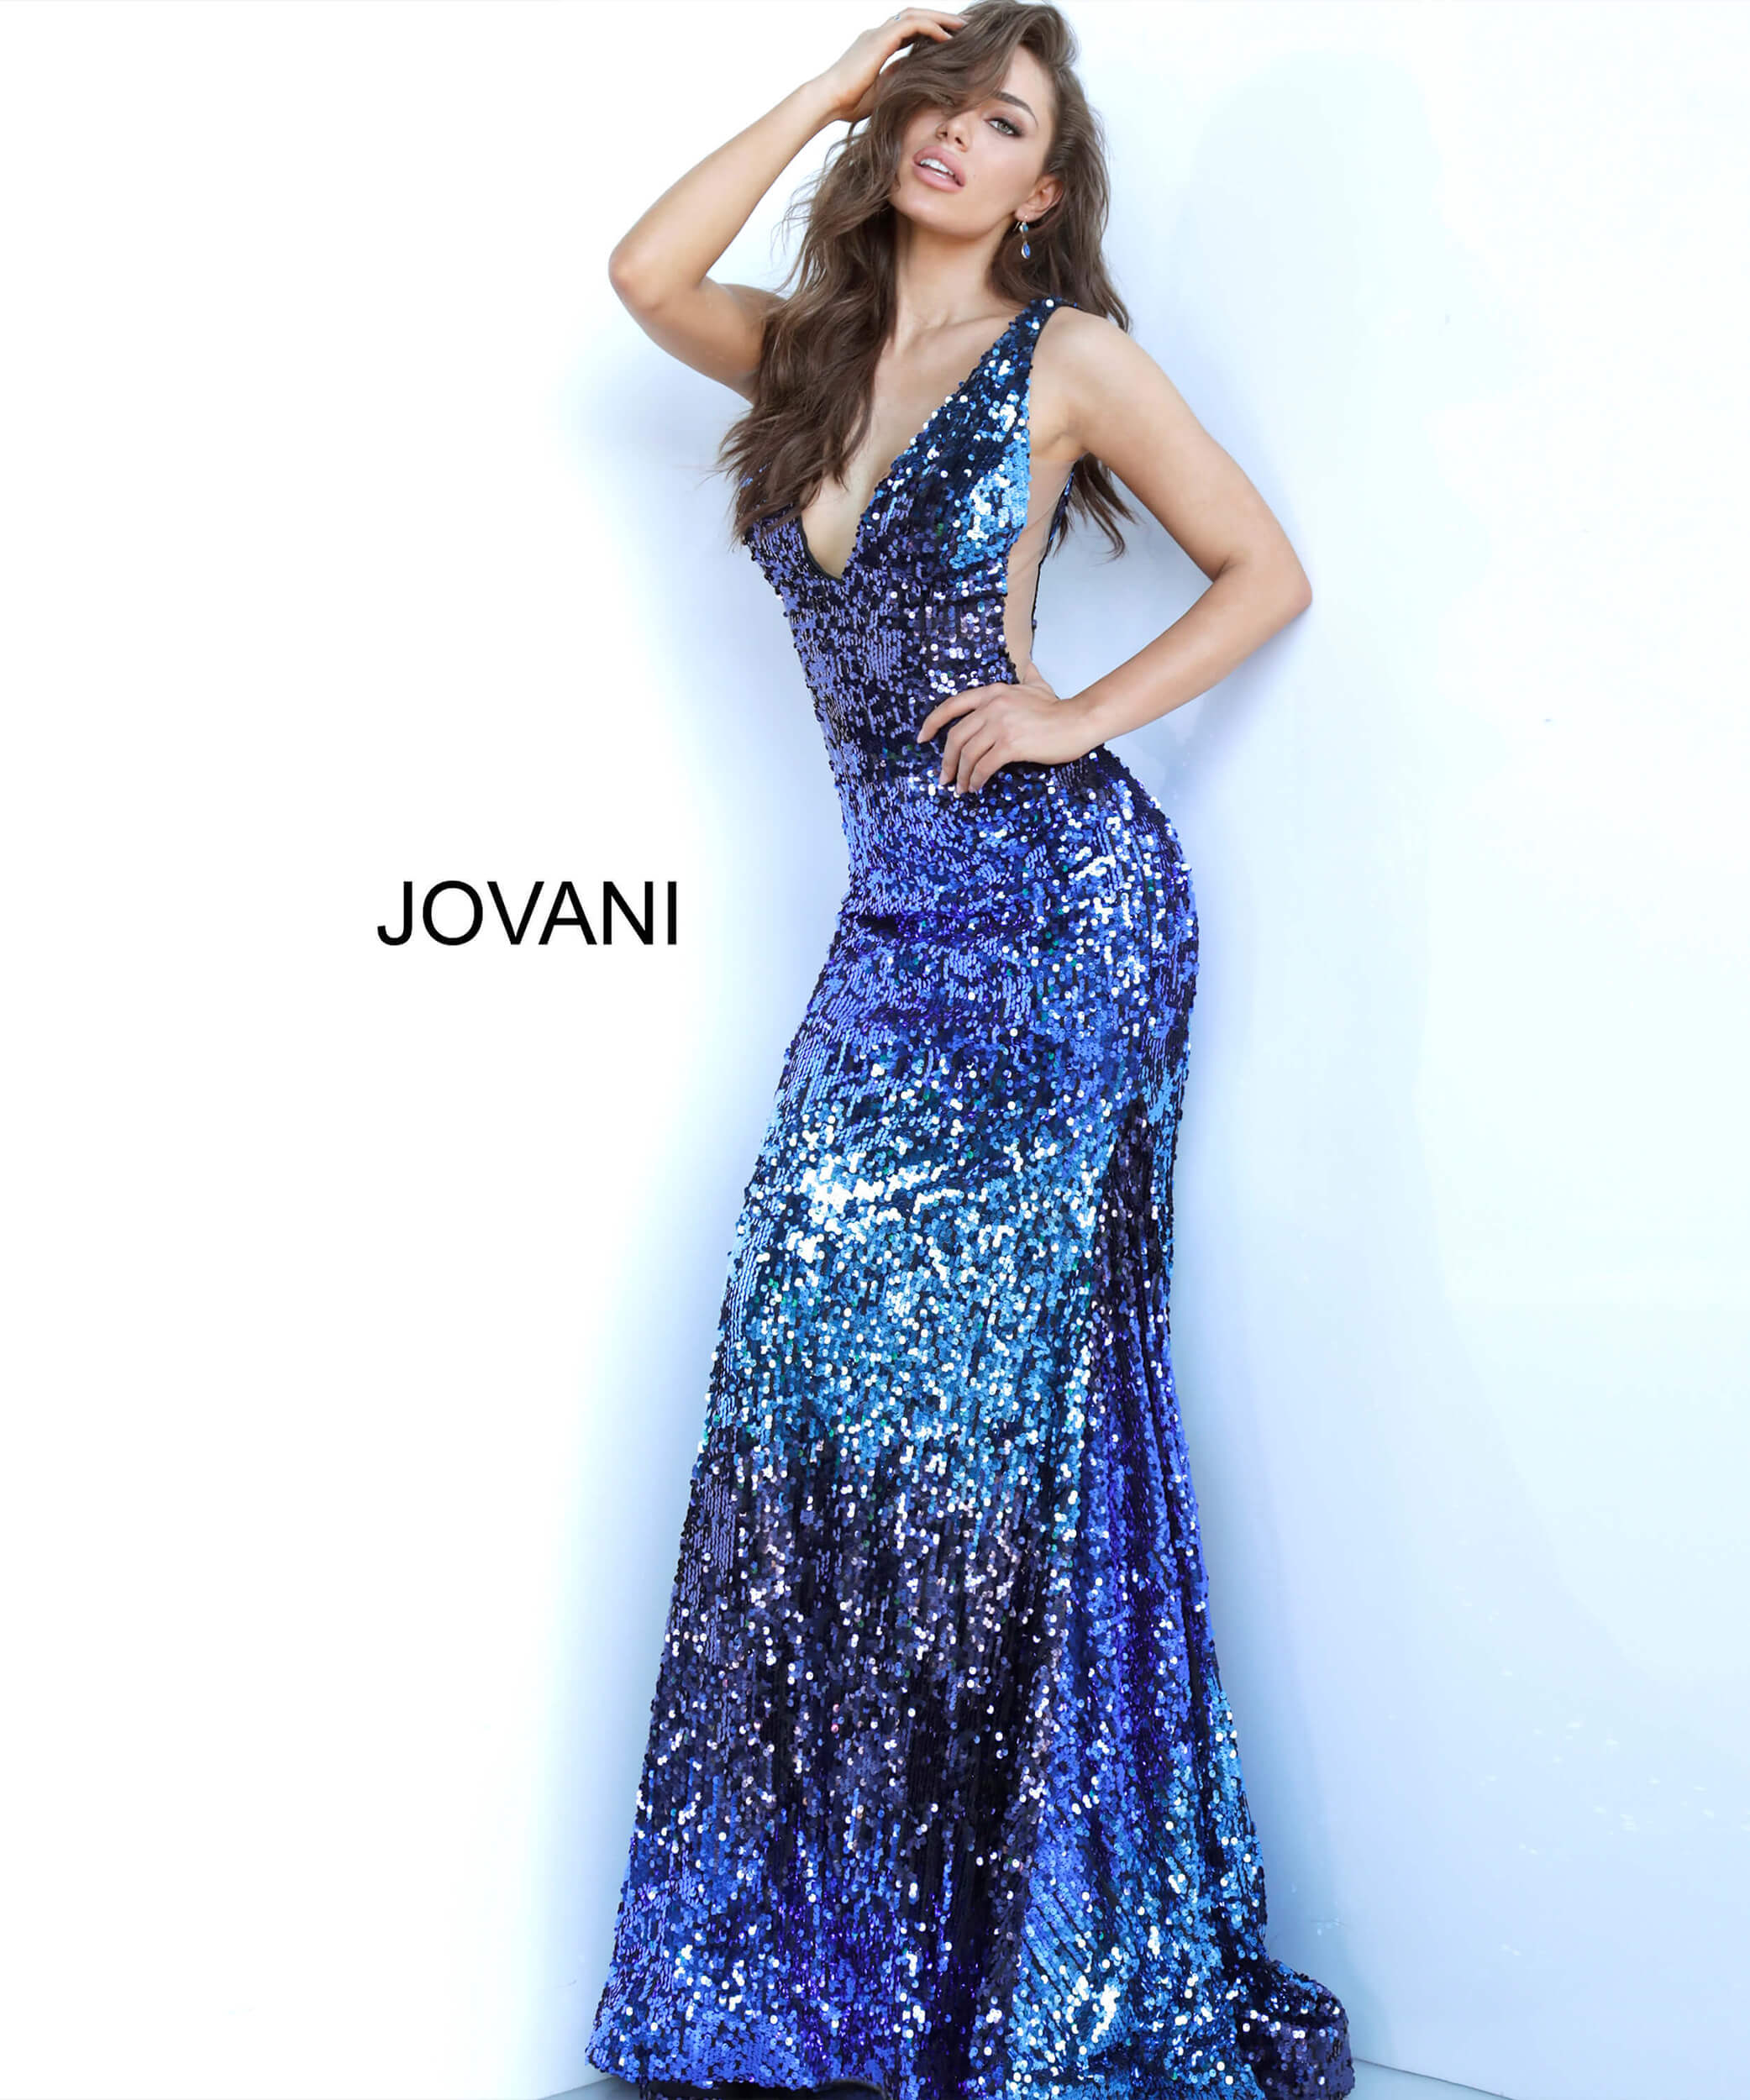 jovani Blue Multi Sequin Plunging V Neck Jovani Dress 3192